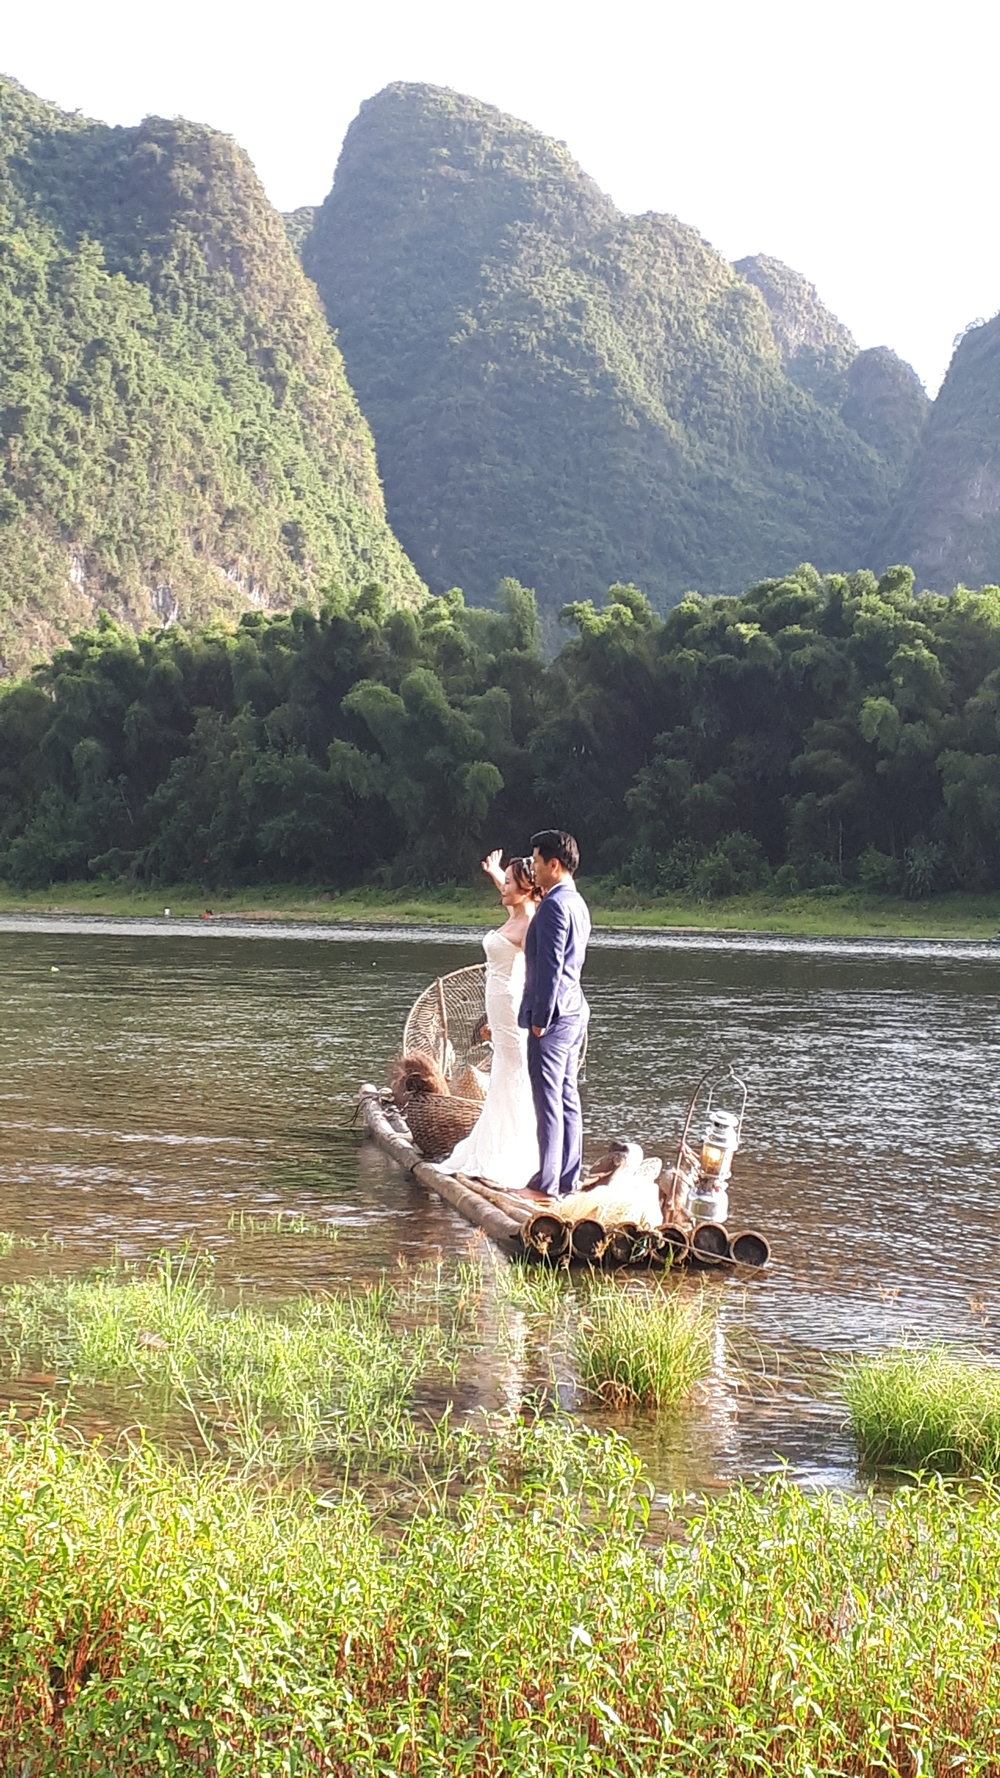 Weding photos being taken on a bamboo raft on the Lijiang River.